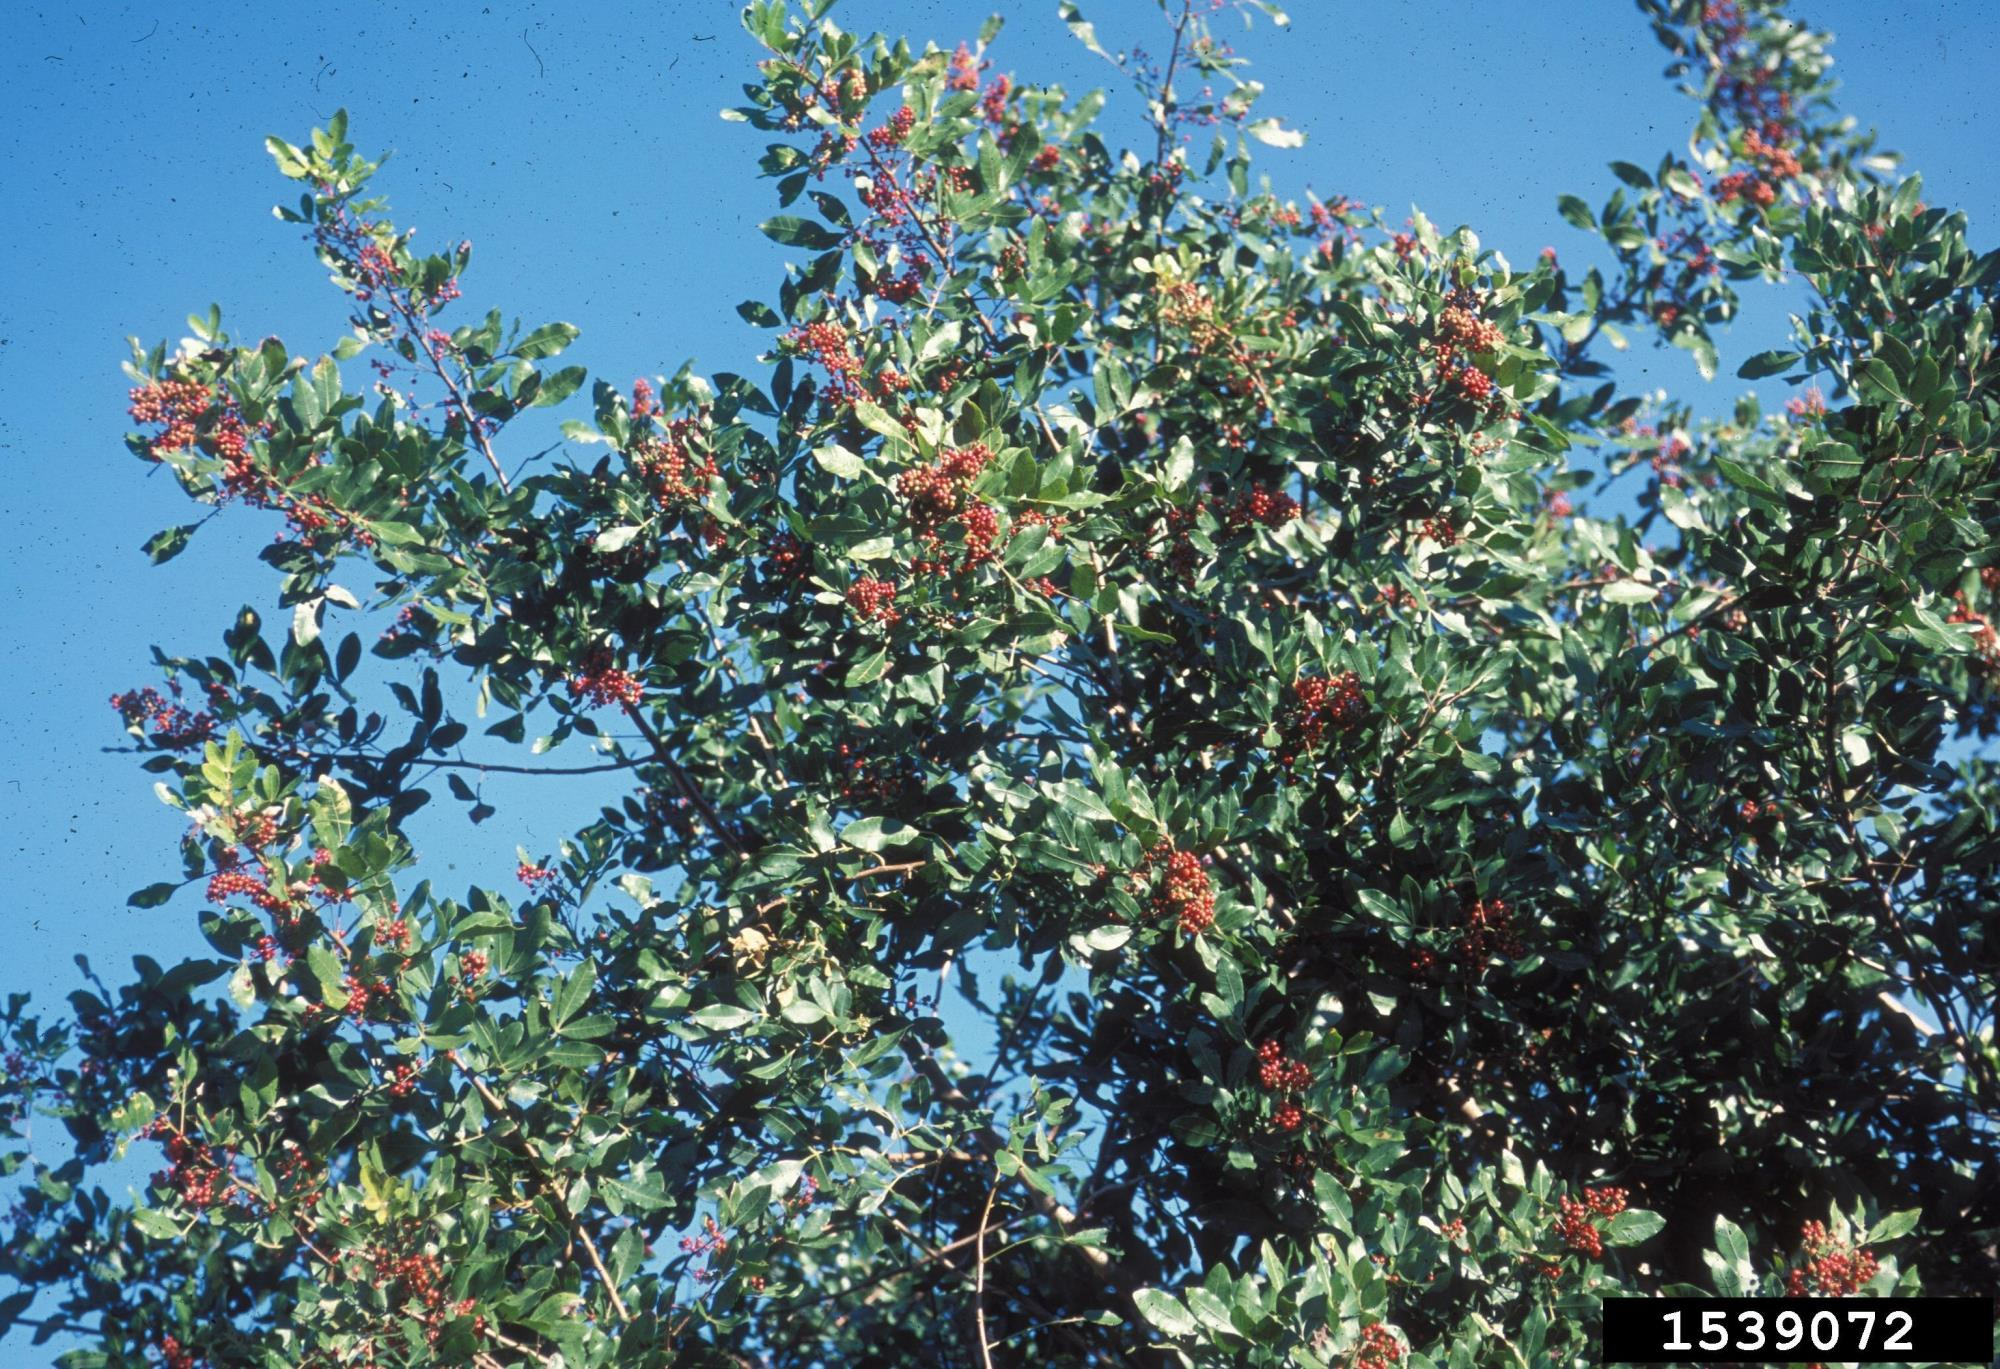 Brazilian Pepper Tree with Ripened Fruit